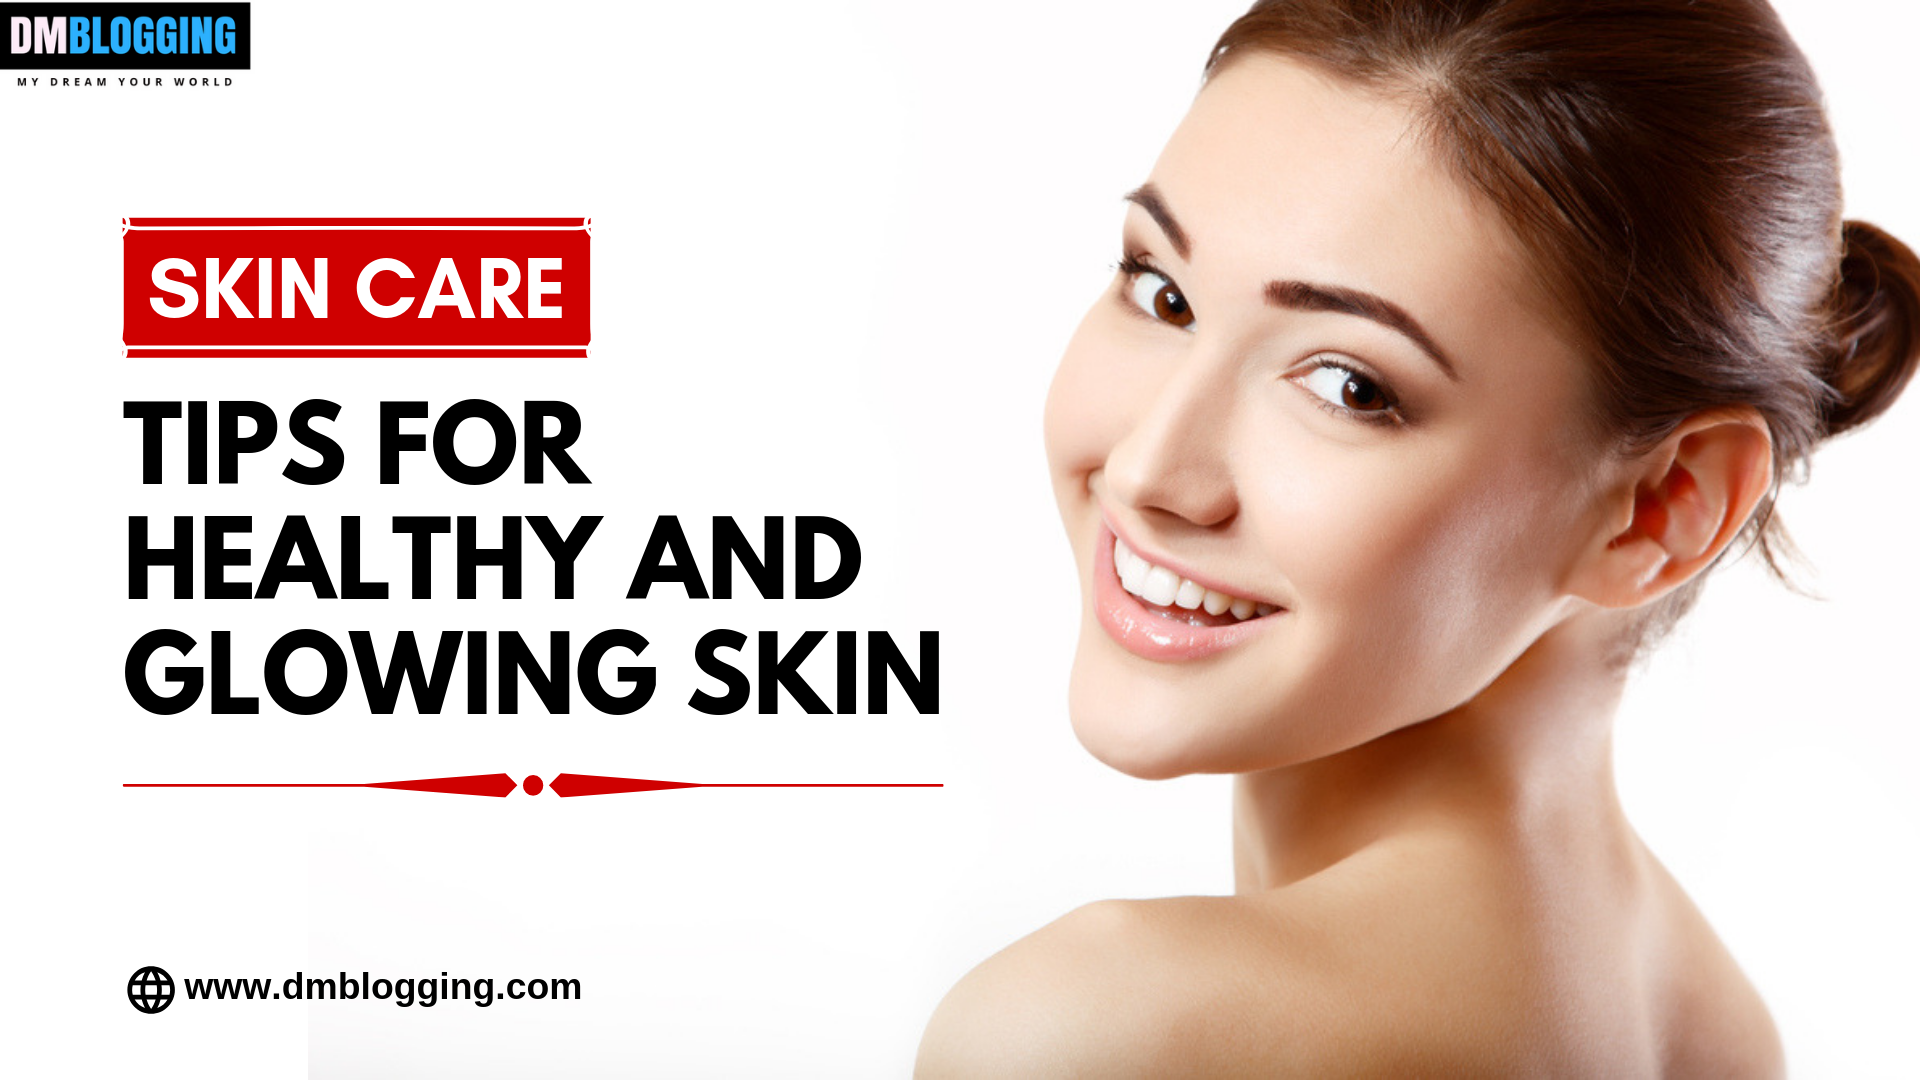 skin care: tips for healthy and glowing skin - dm blogging